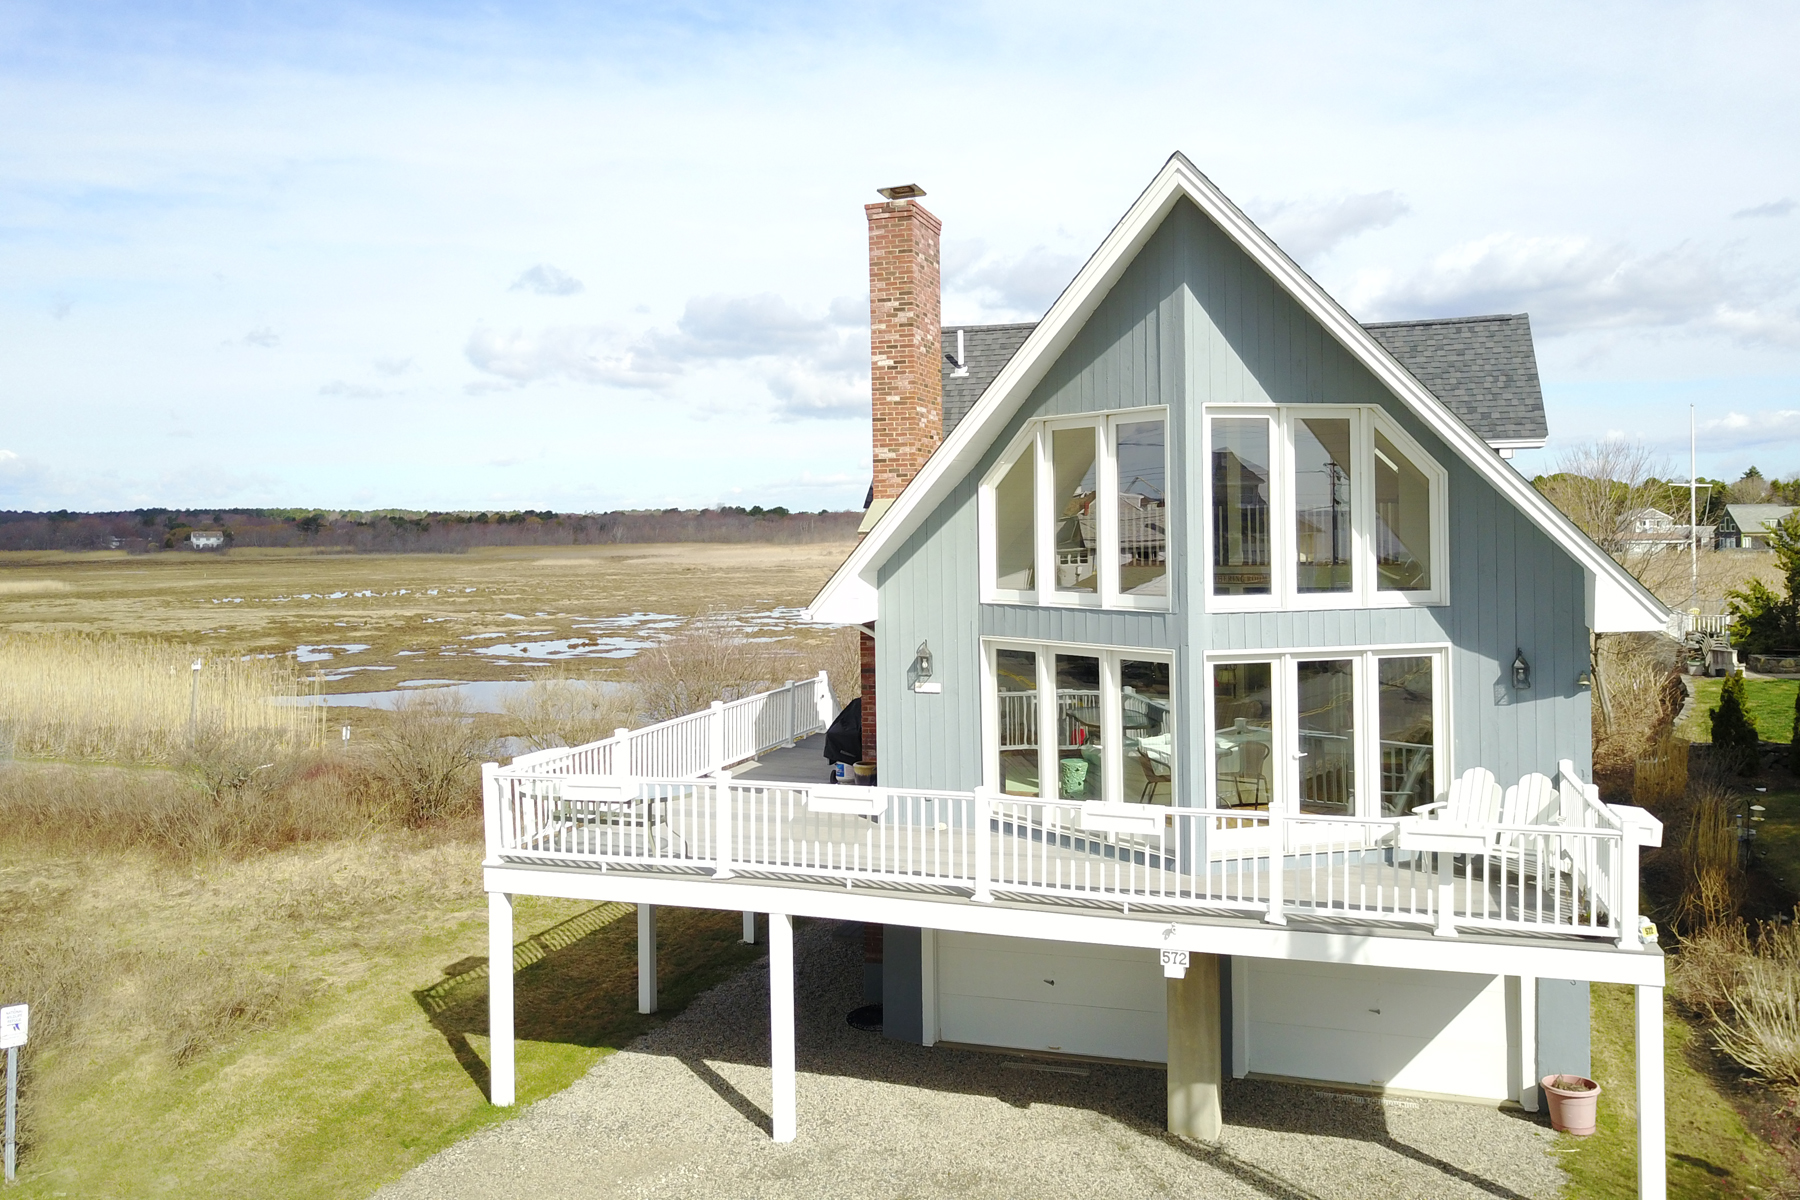 Single Family Home for Sale at Stunning Ocean View Contemporary in Moody 572 Ocean Avenue Wells, Maine 04090 United States